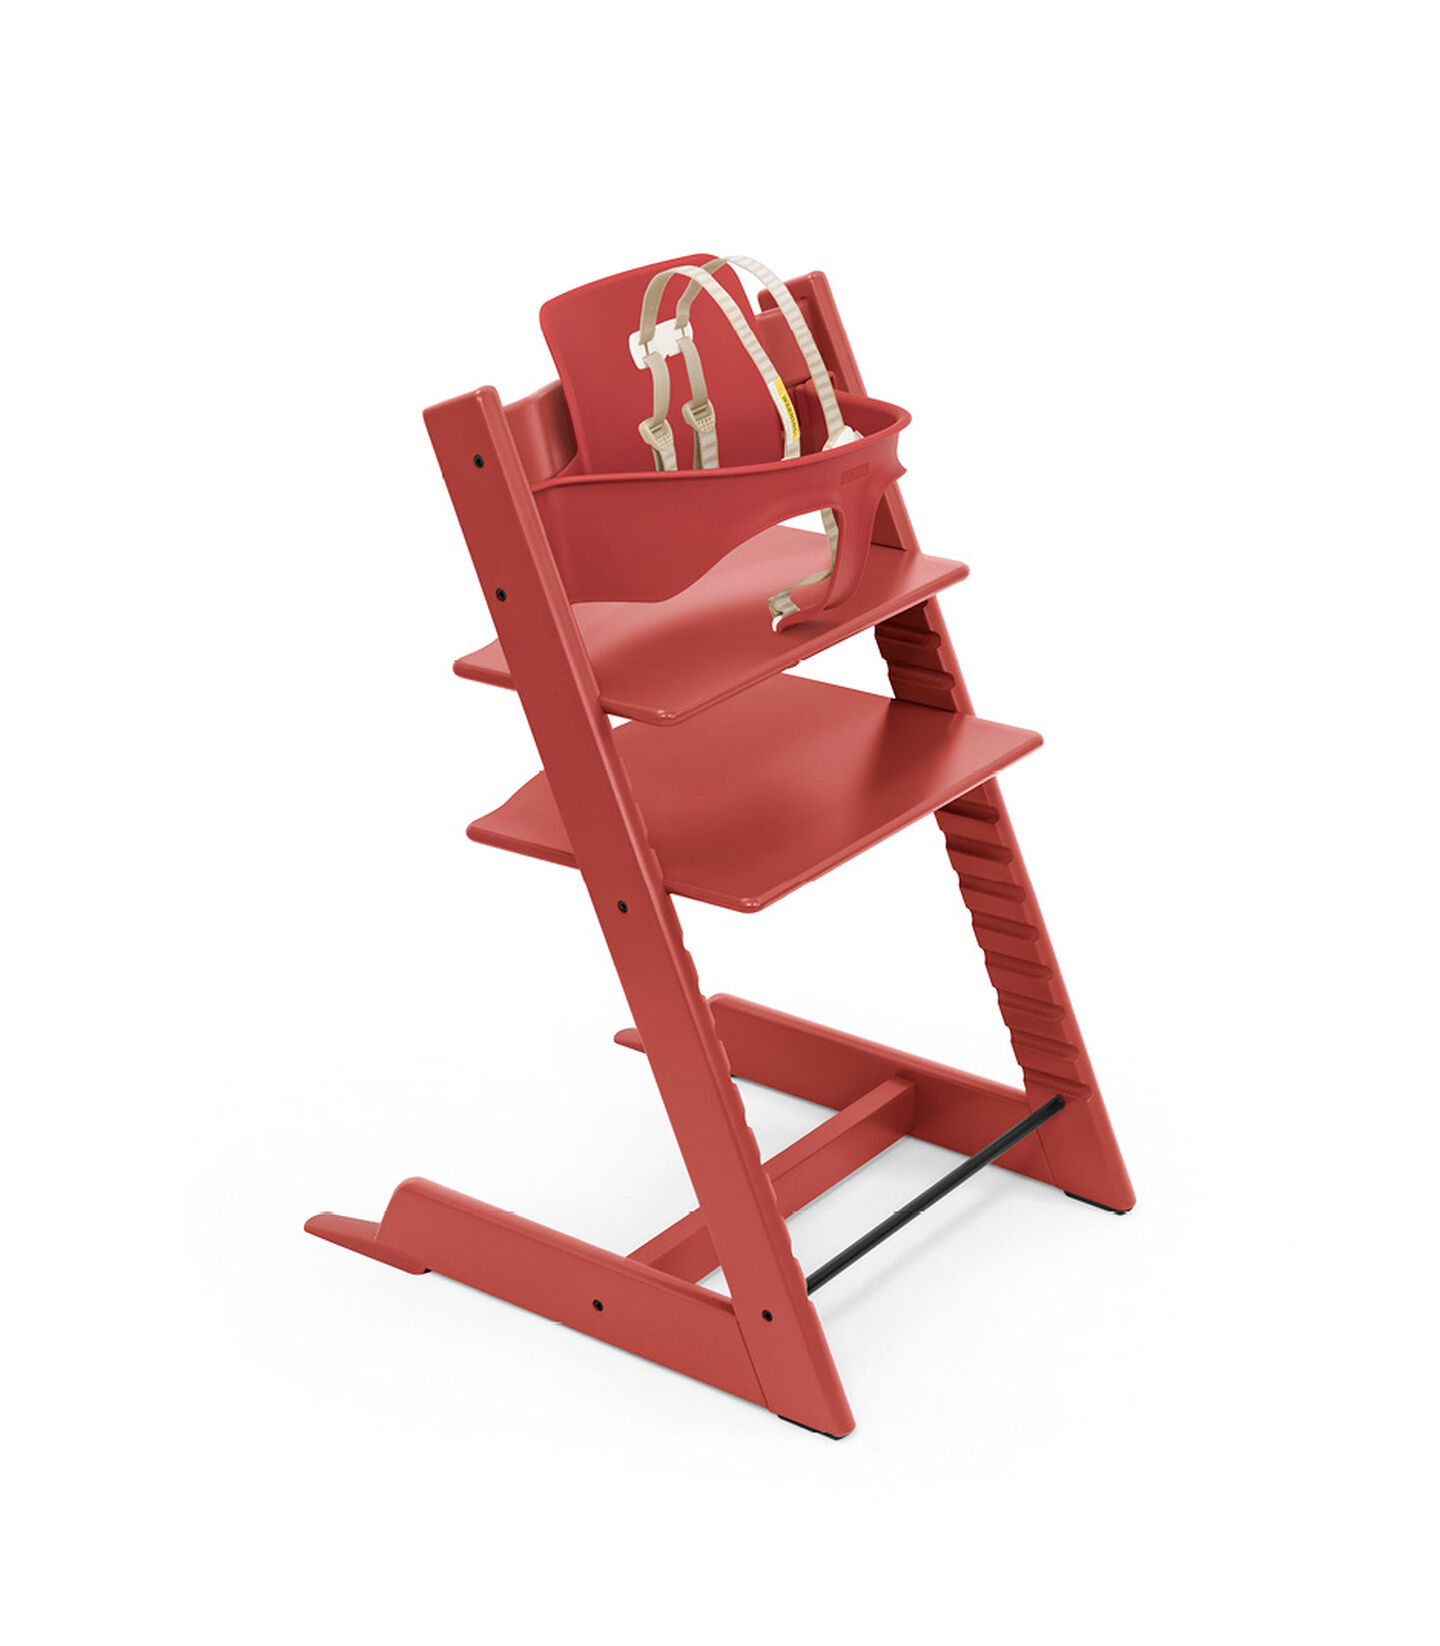 Tripp Trapp® Bundle High Chair US 20 Warm Red, Warm Red, mainview view 2